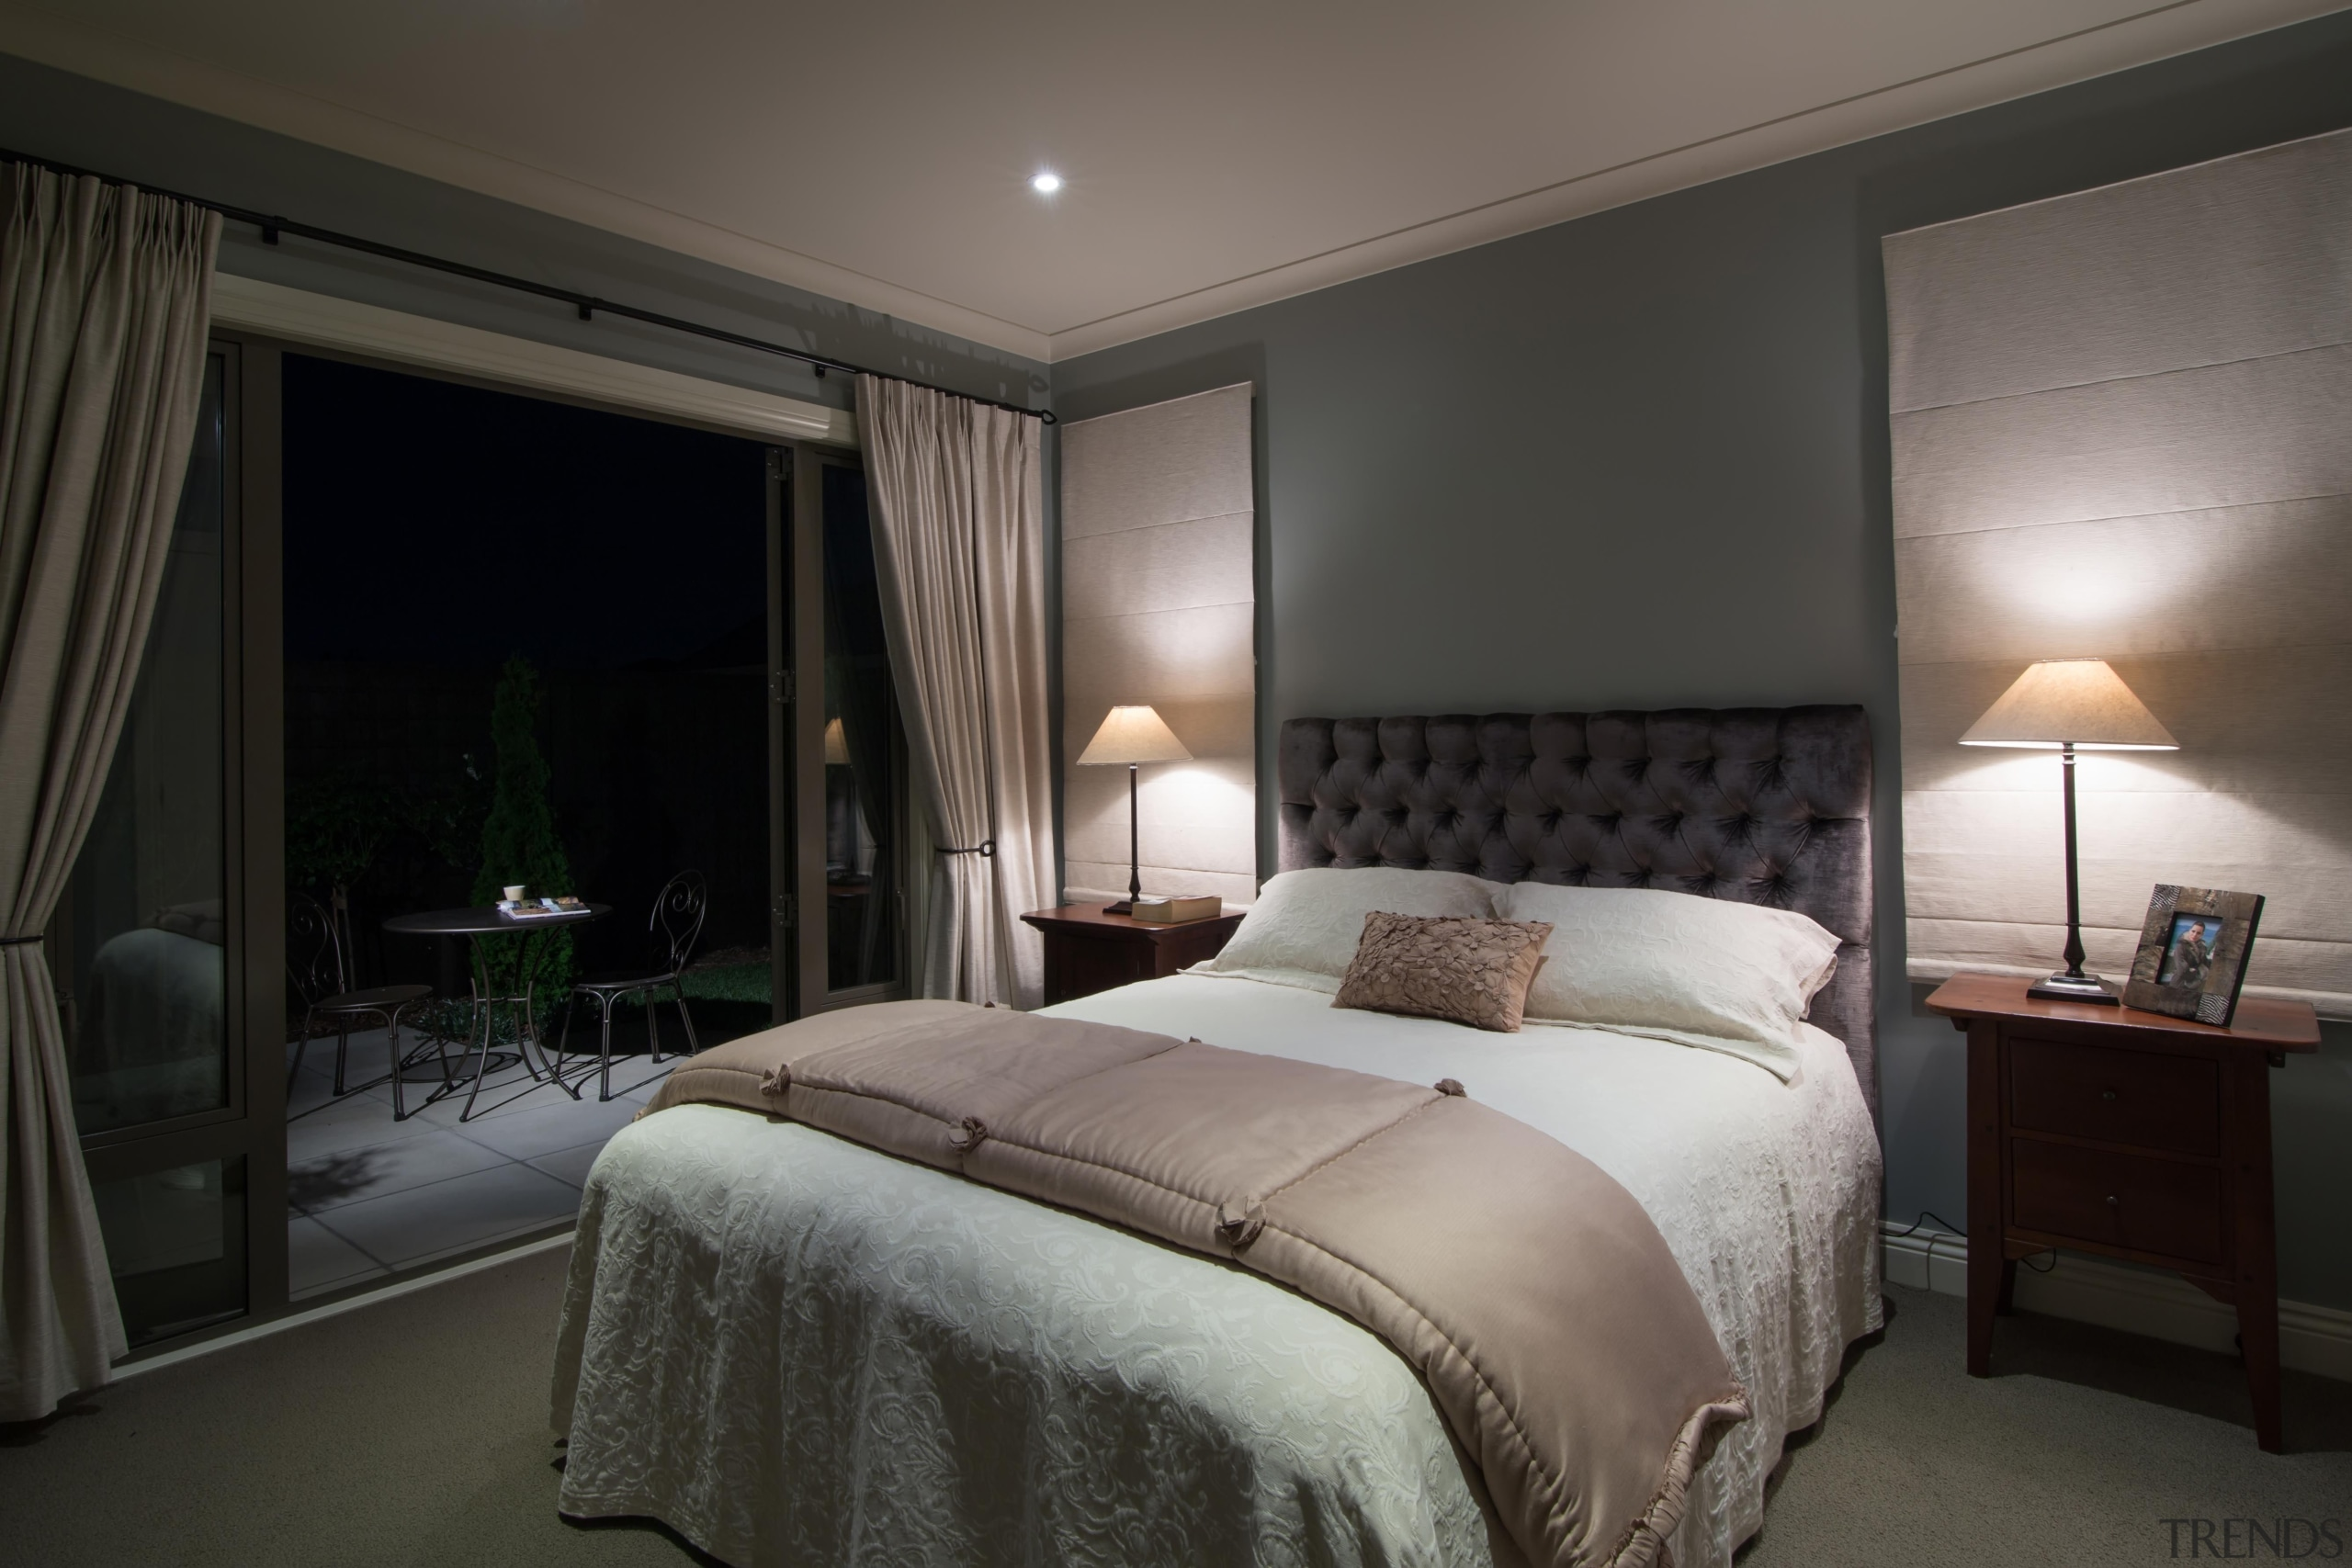 Img3540 - bed frame   bedroom   ceiling bed frame, bedroom, ceiling, home, hotel, interior design, lighting, property, real estate, room, suite, wall, window, window treatment, black, gray